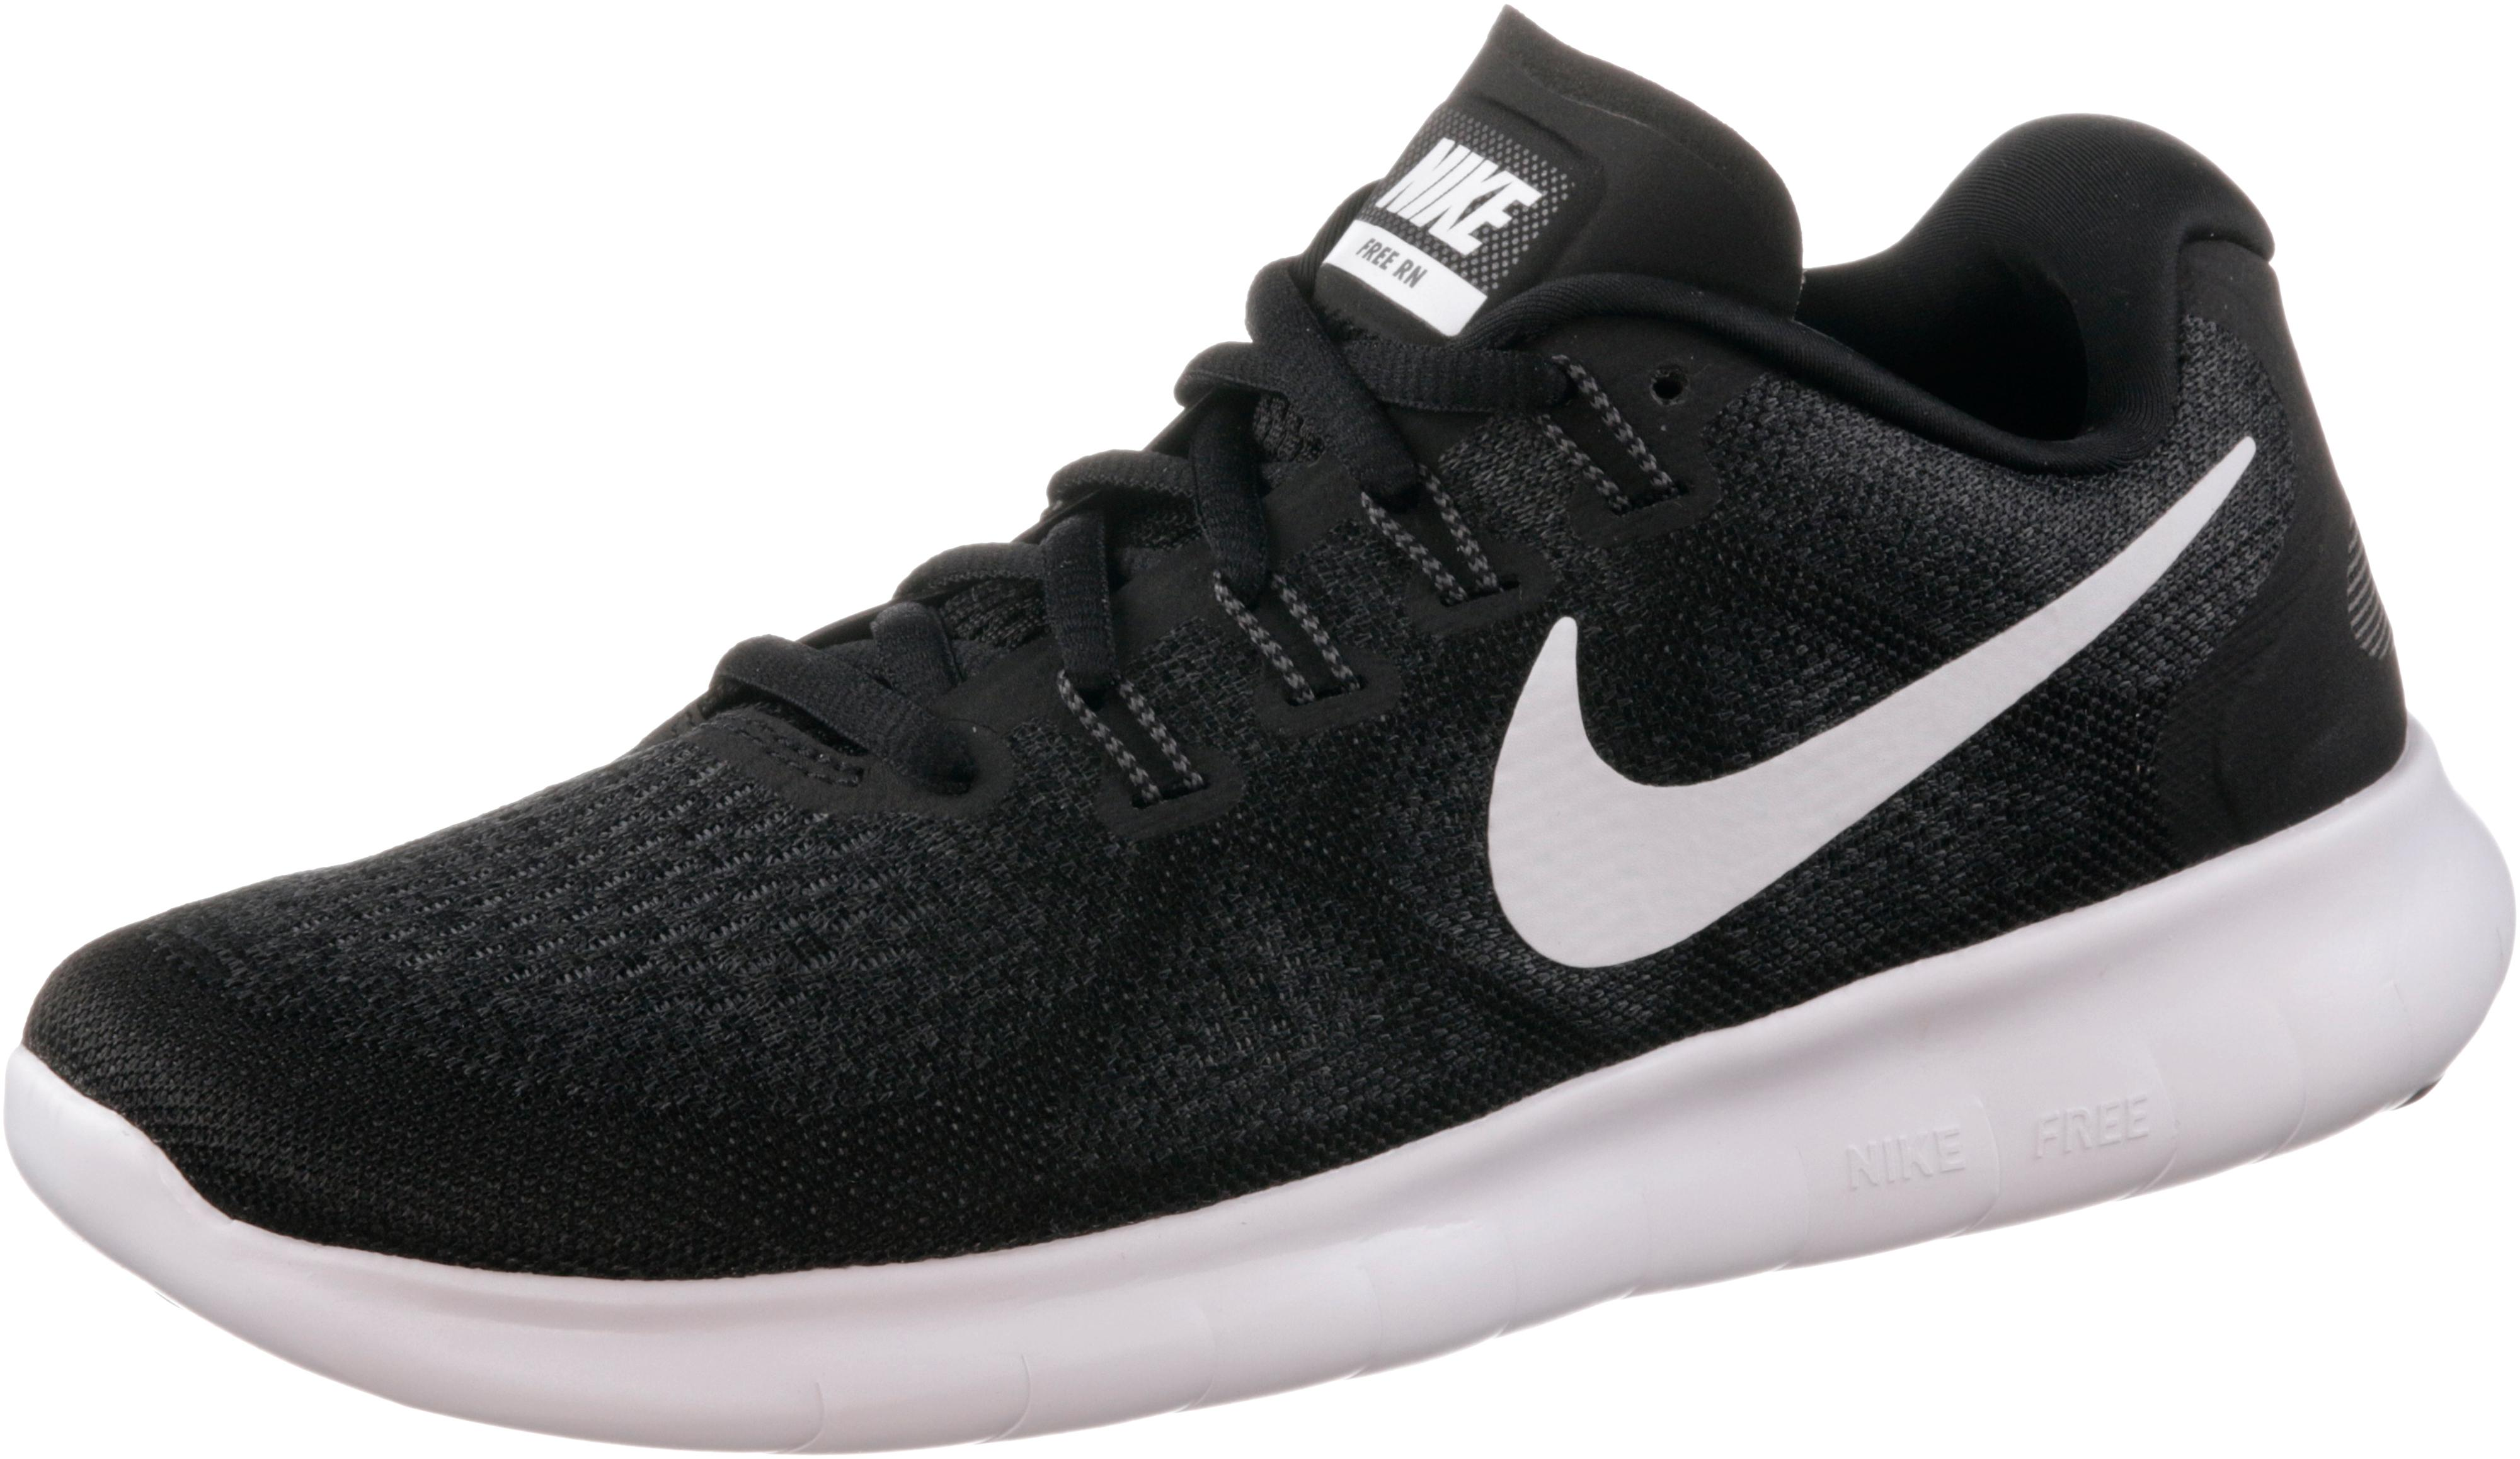 Nike schuhe ratenzahlung